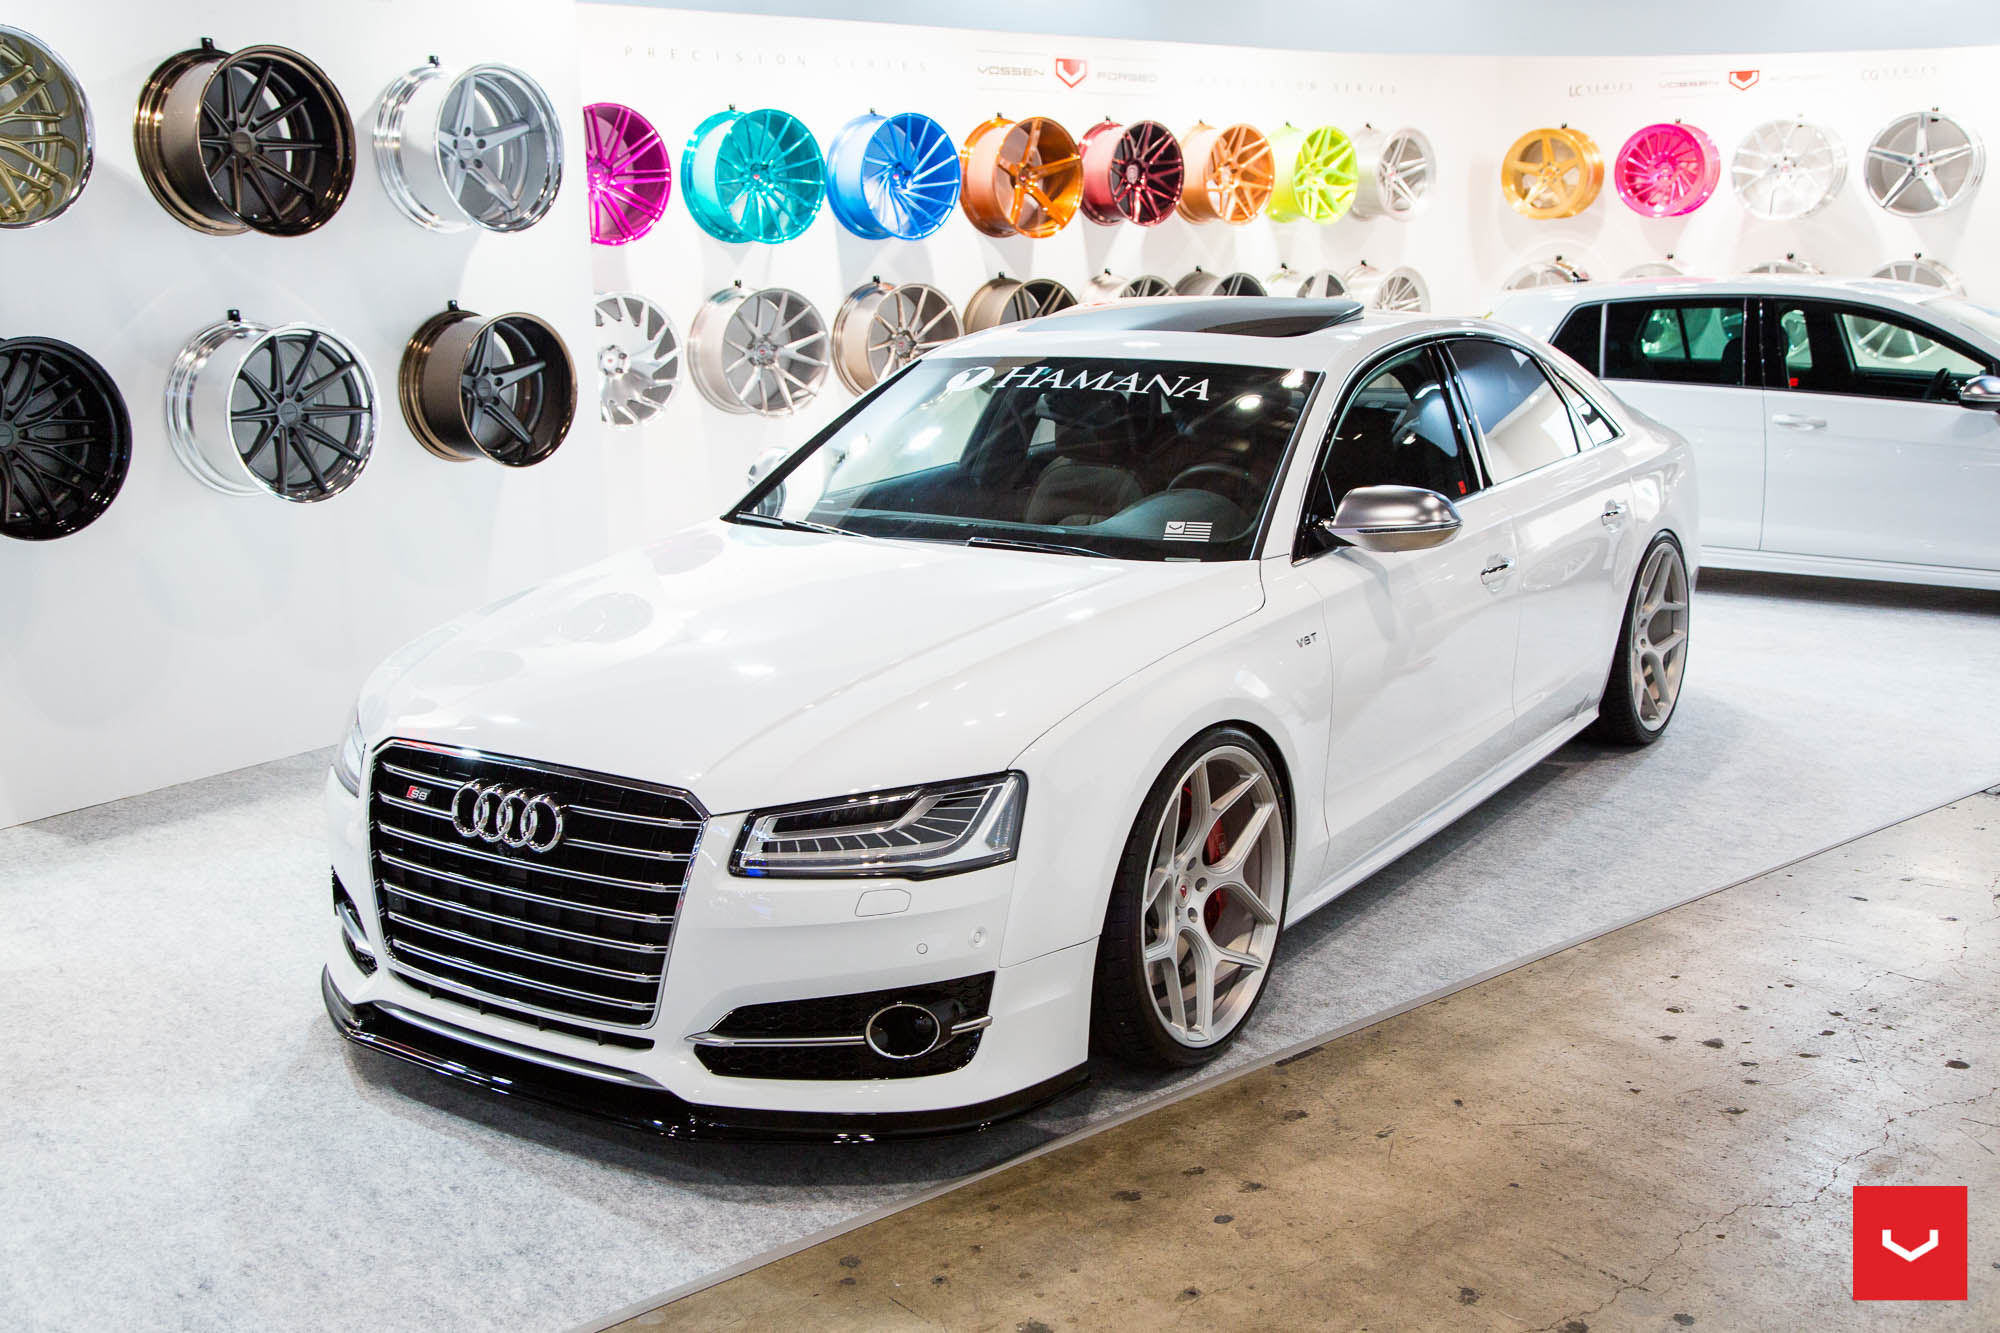 Golf r audi s8 and amg gt get widebody hamana kits and vossen wheels autoevolution